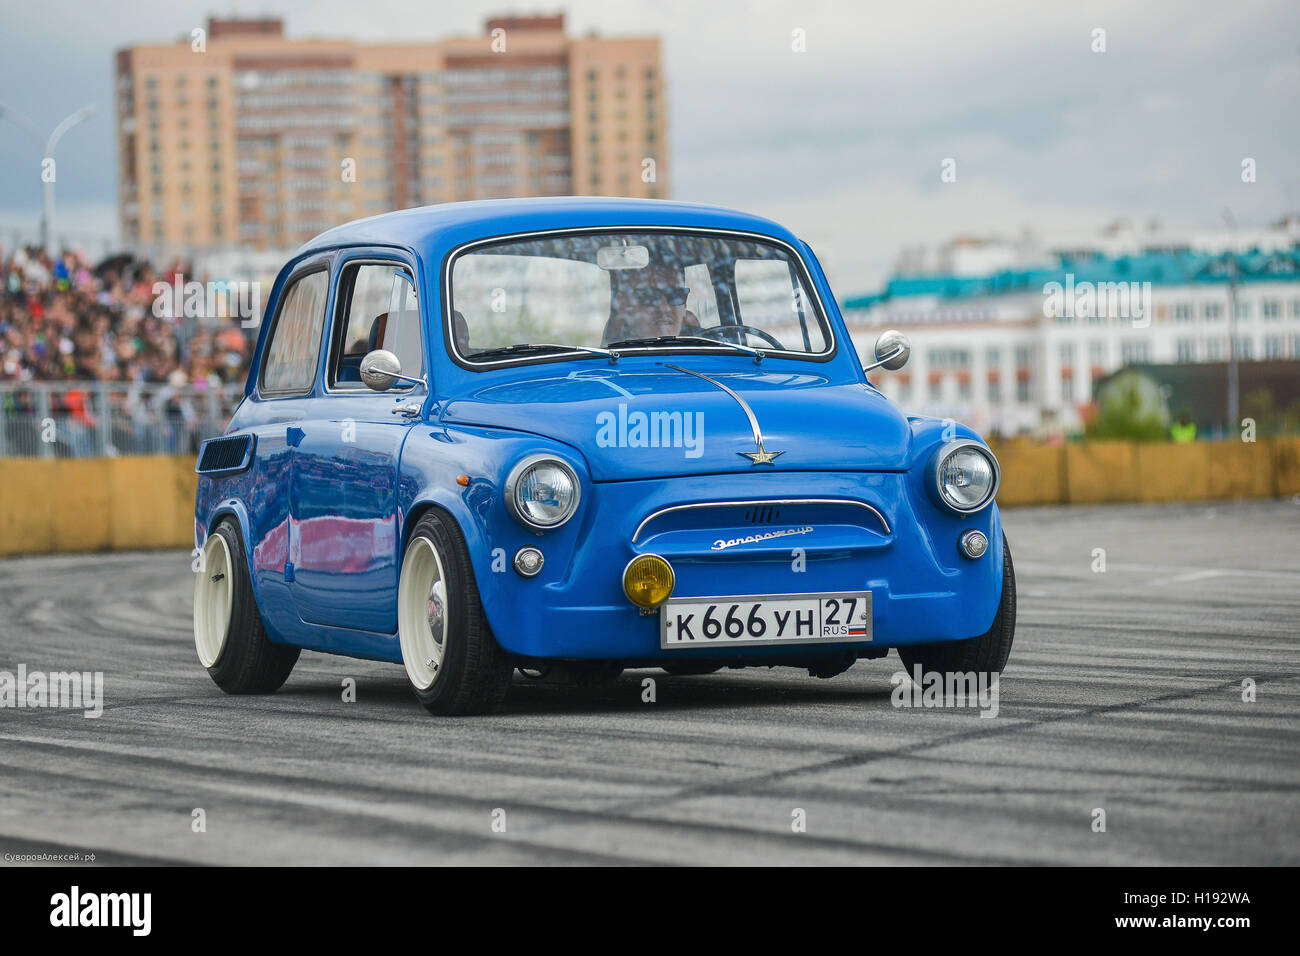 Vintage restored and tuned blue ZAZ-965 Zaporozhets car